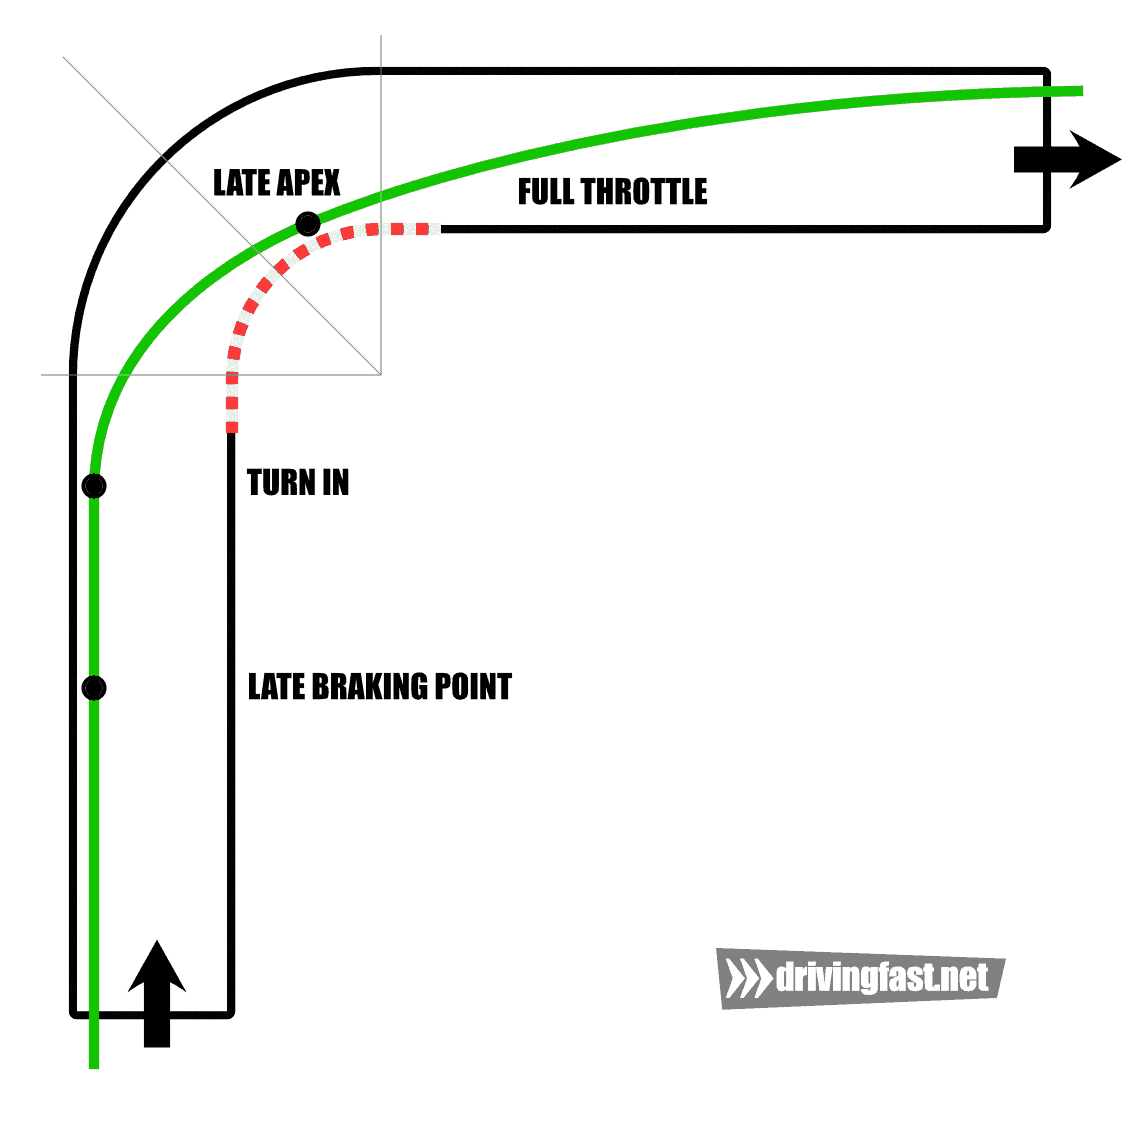 The racing line with late apex